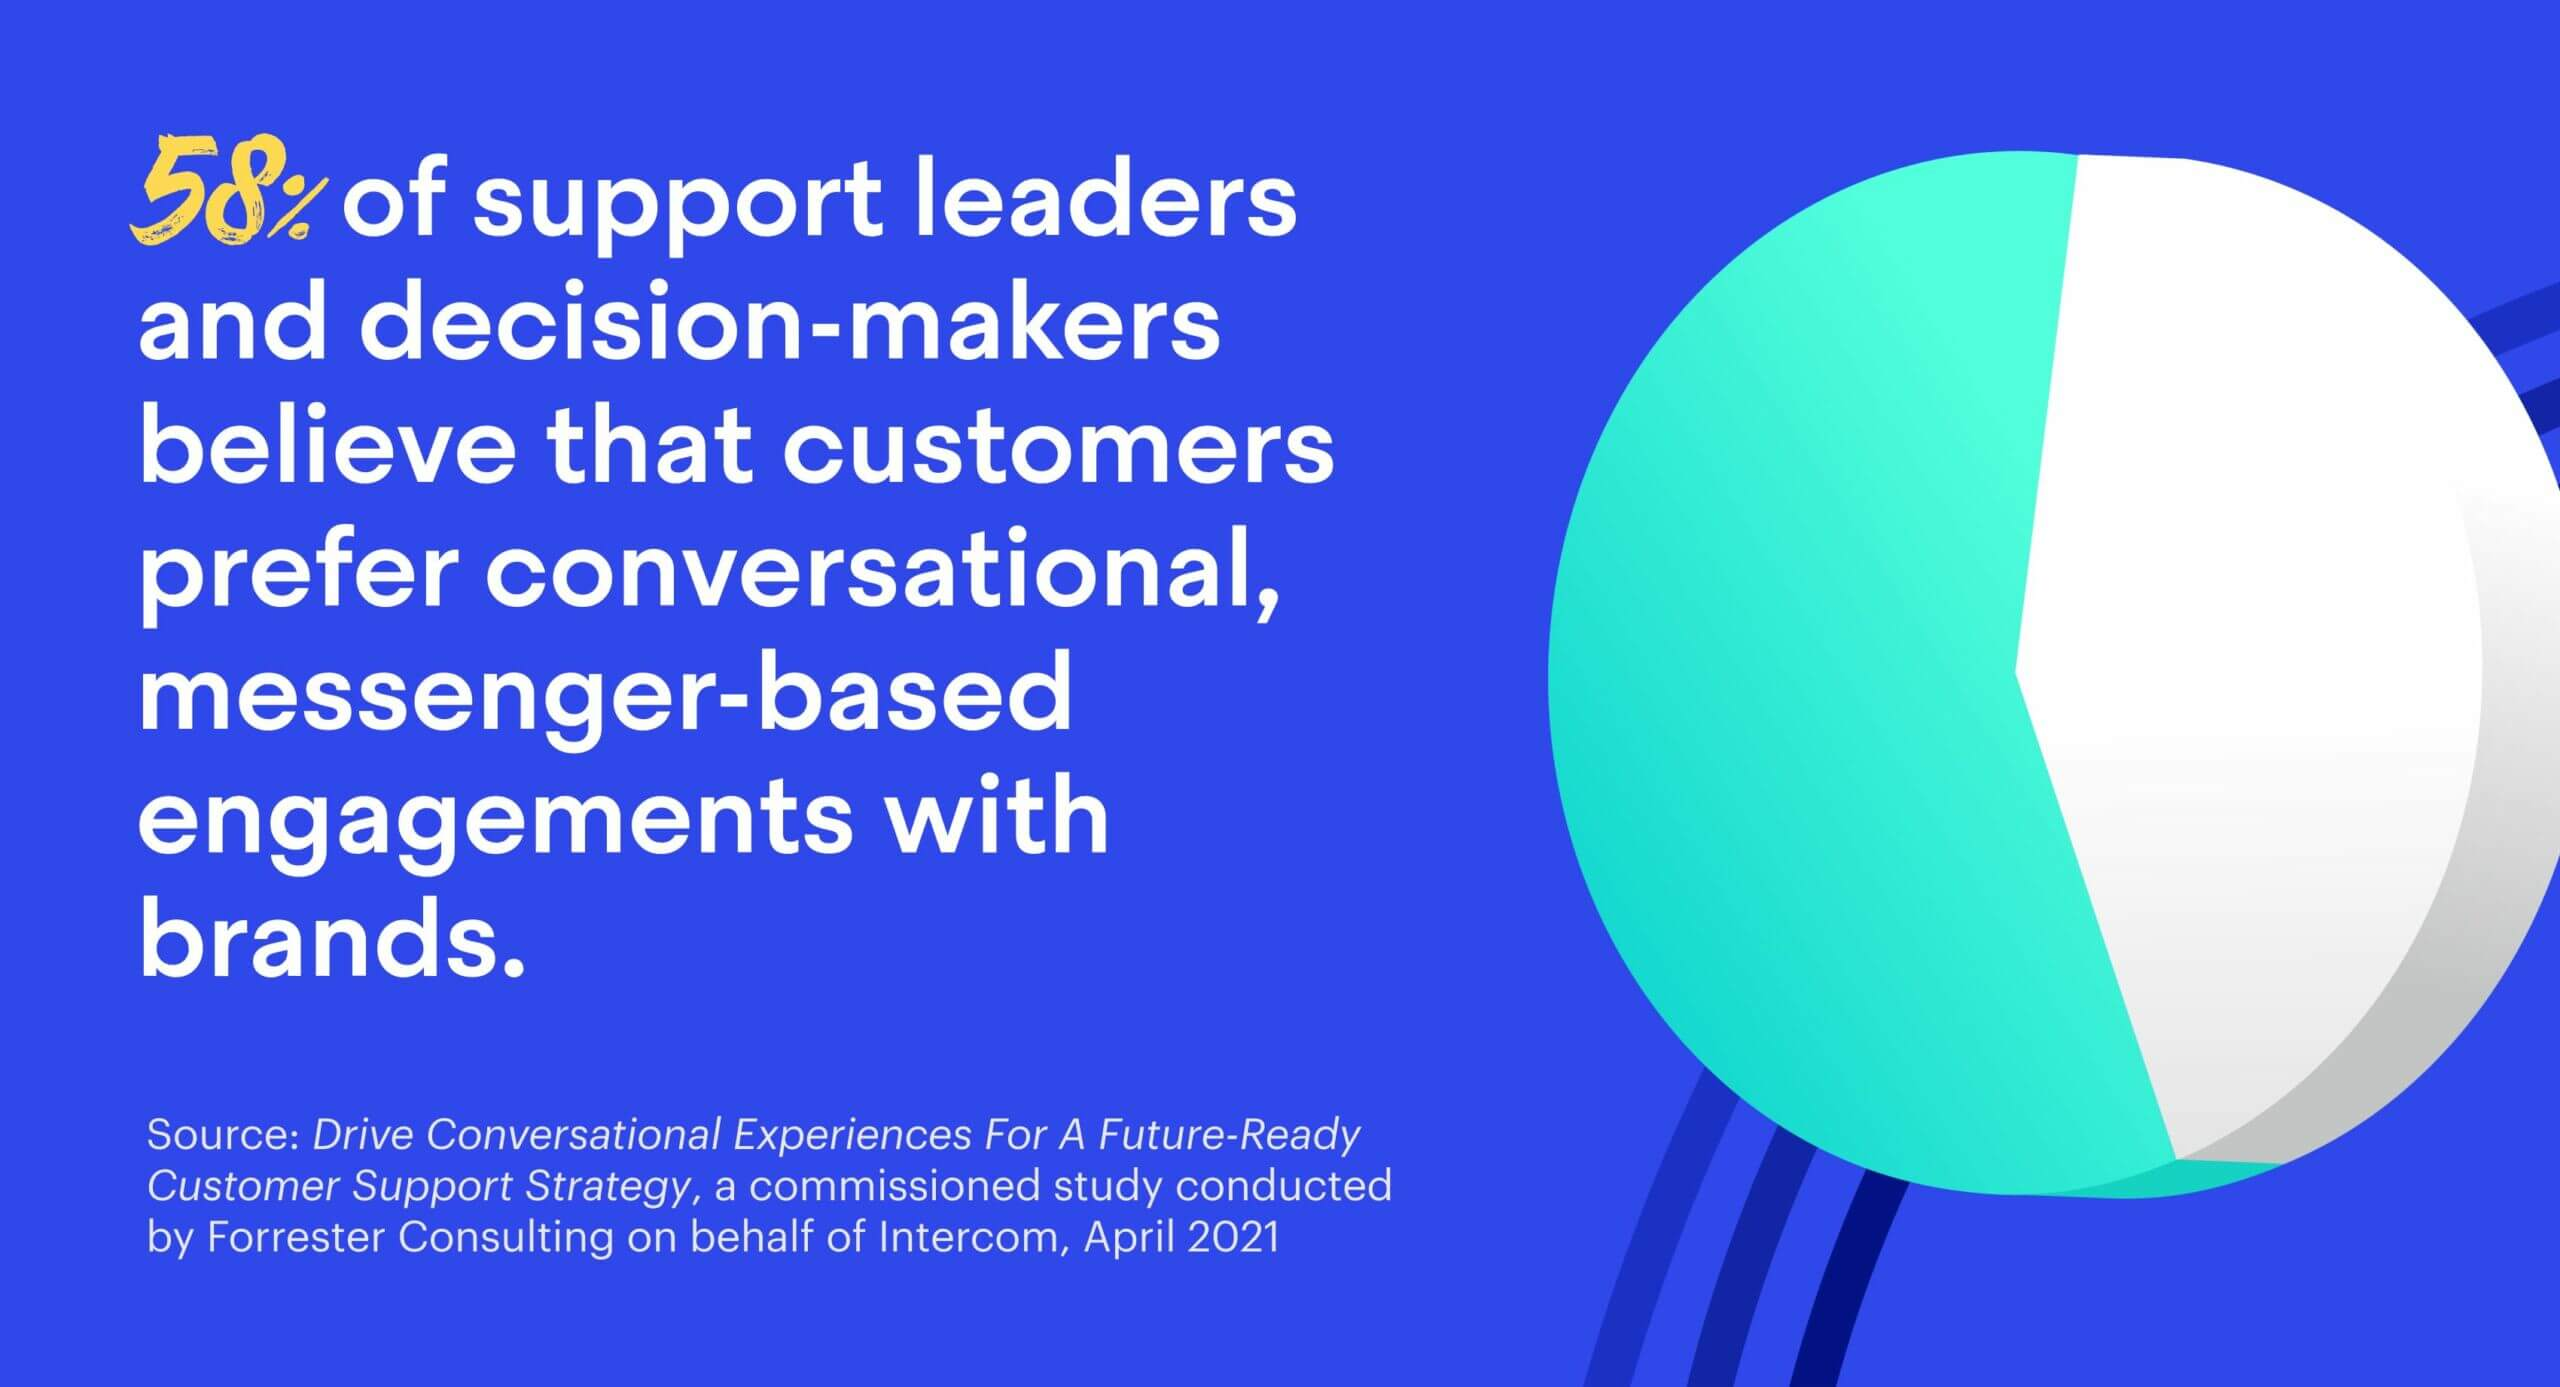 58% of support leaders and decision-makers believe that customers prefer conversational, messenger-based engagements with brands.